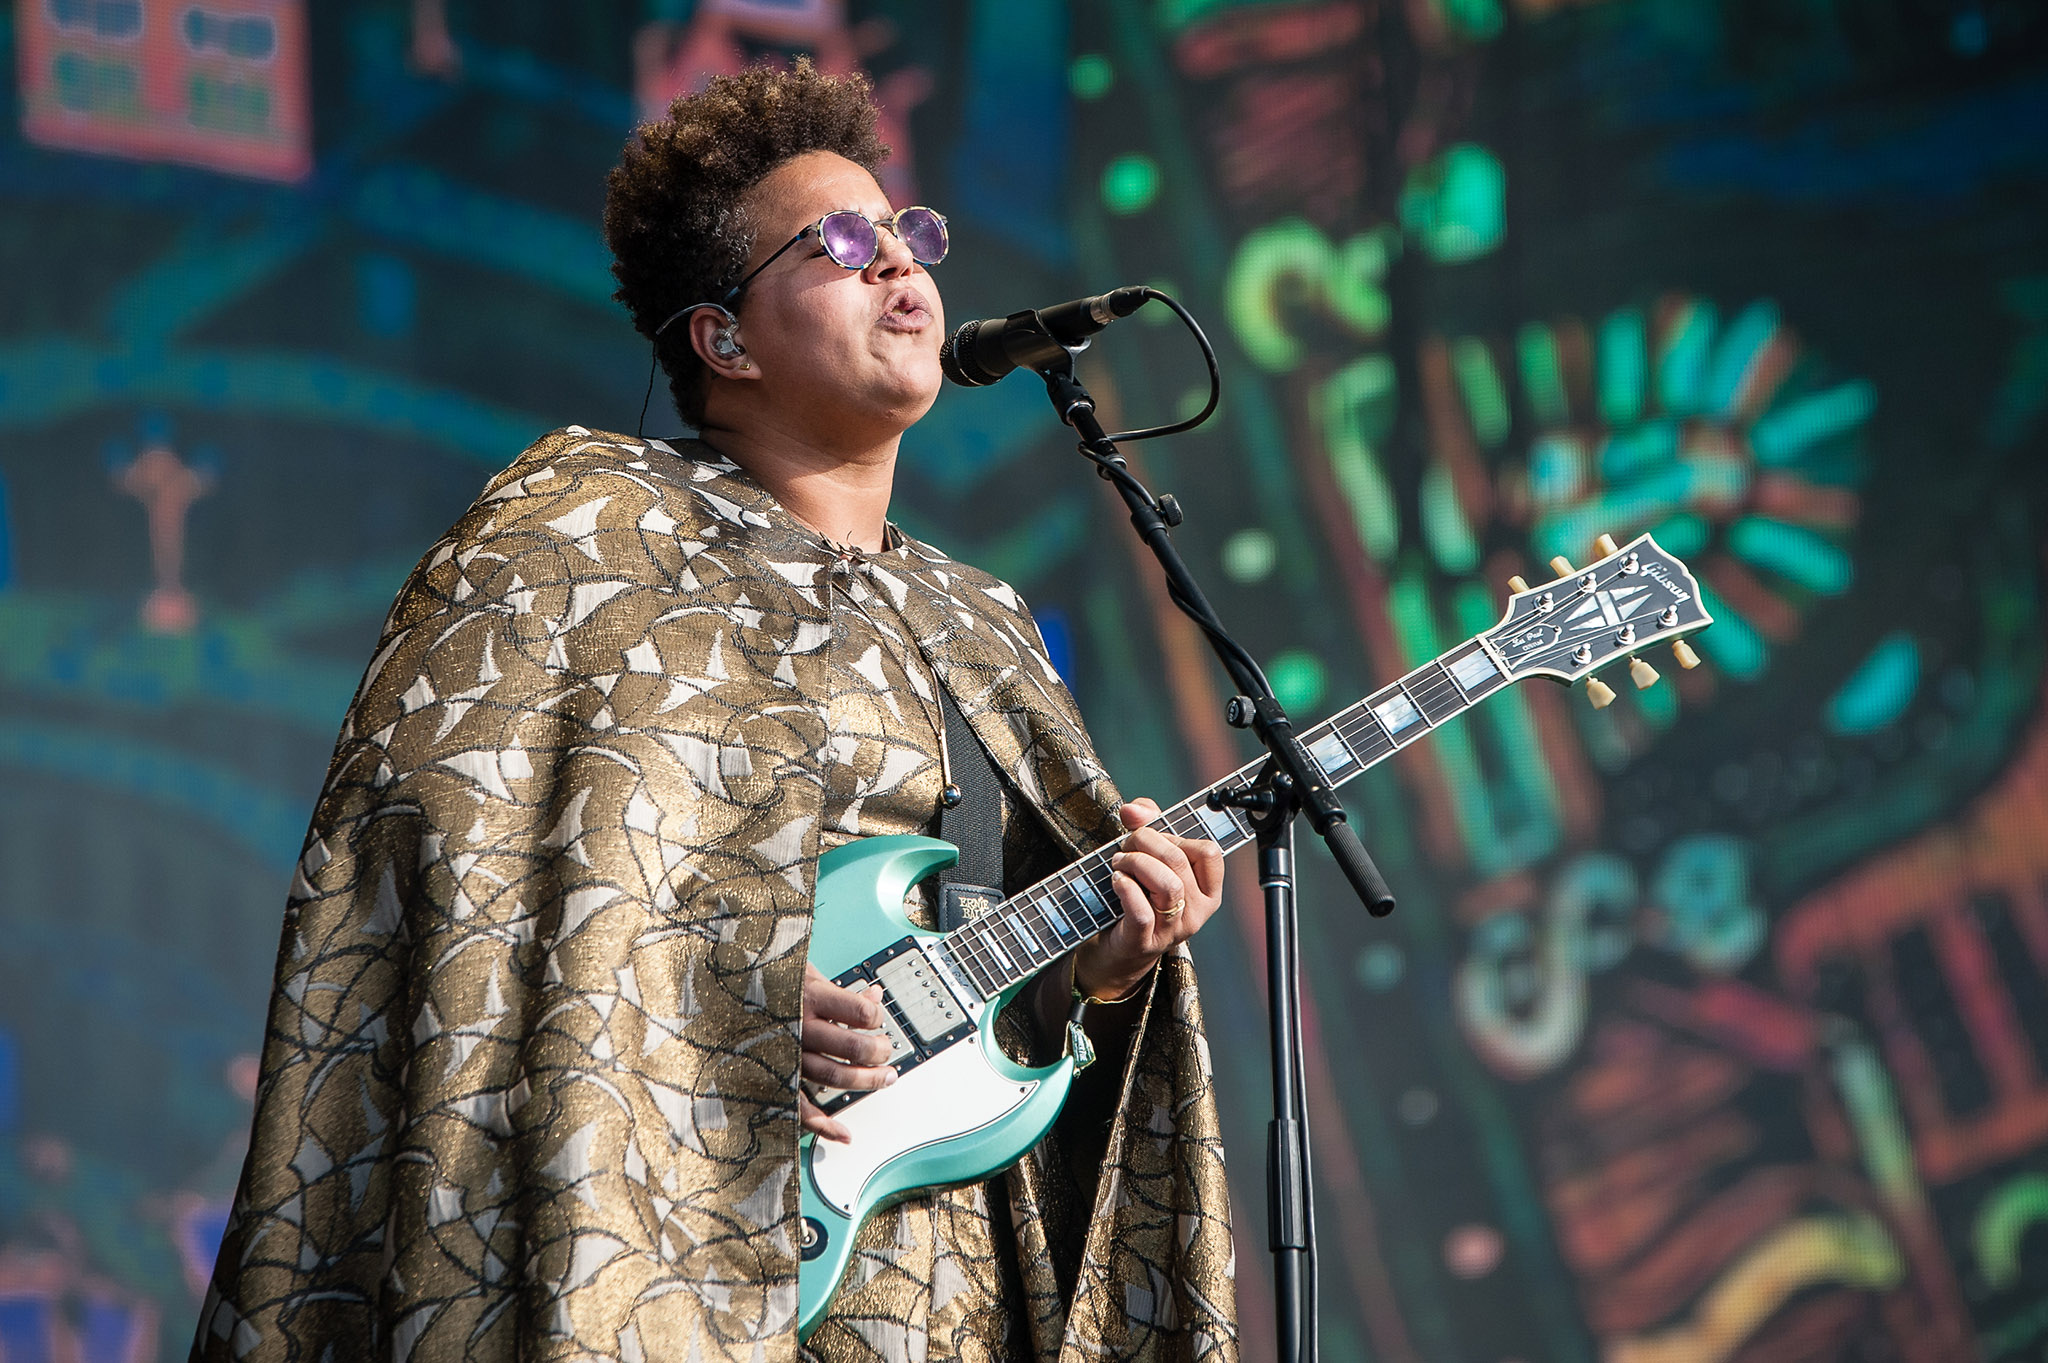 Alabama Shakes' Brittany Howard emerges with new band Bermuda Triangle